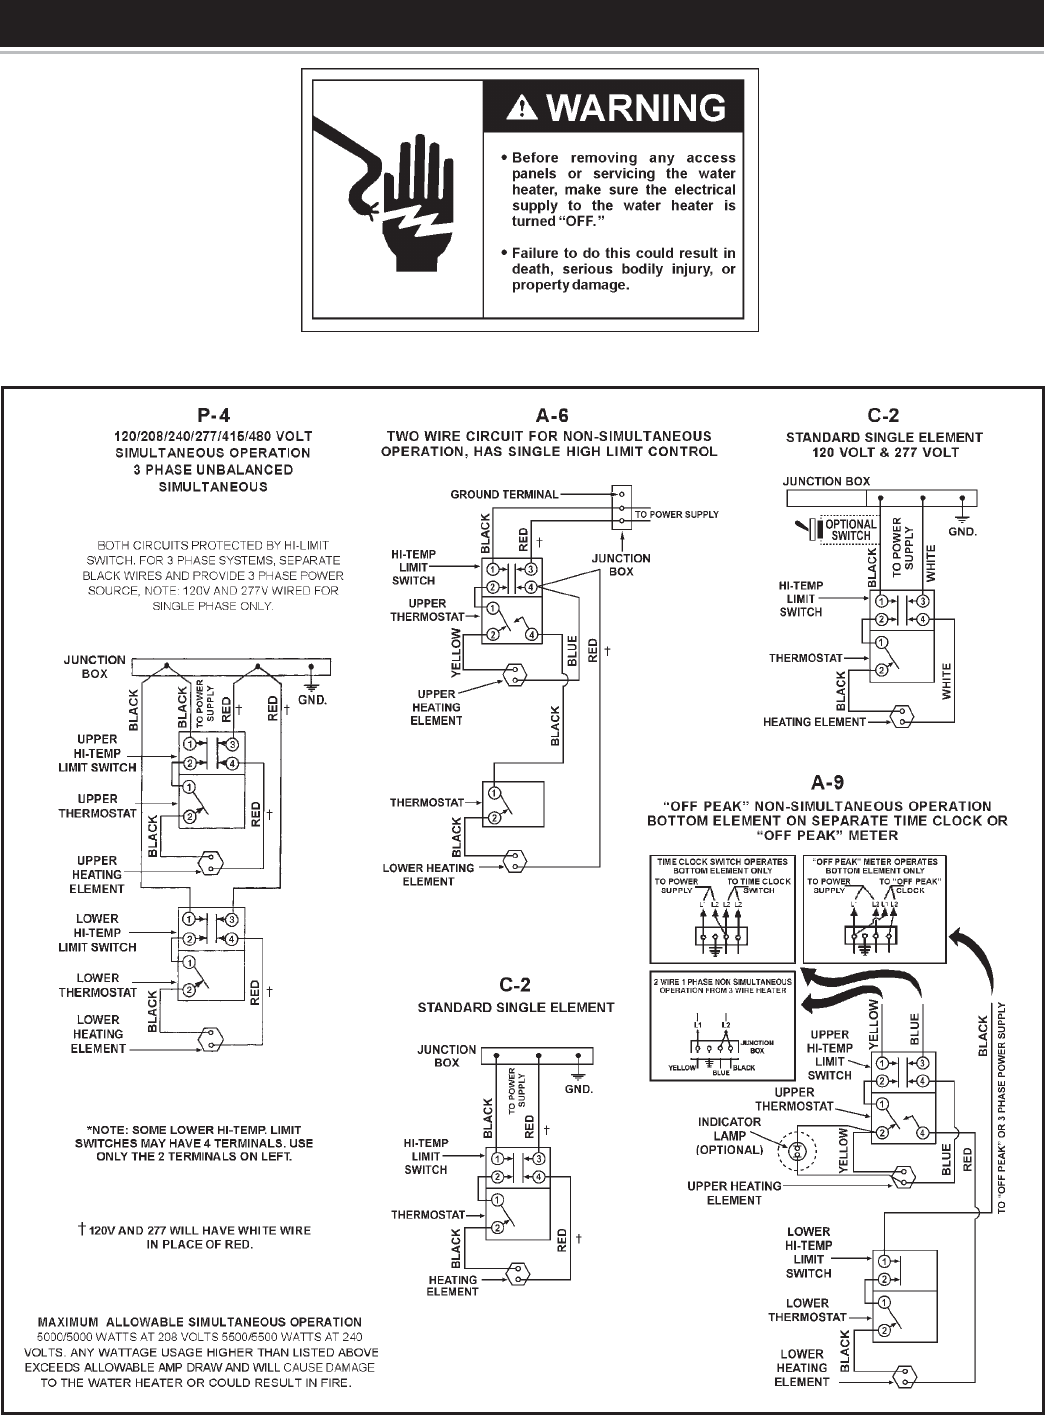 3509a988 74d5 459b aaef 95ebb87e3bd4 bgb page 11 of a o smith water heater ect 52 user guide ao smith water heater wiring diagram at nearapp.co